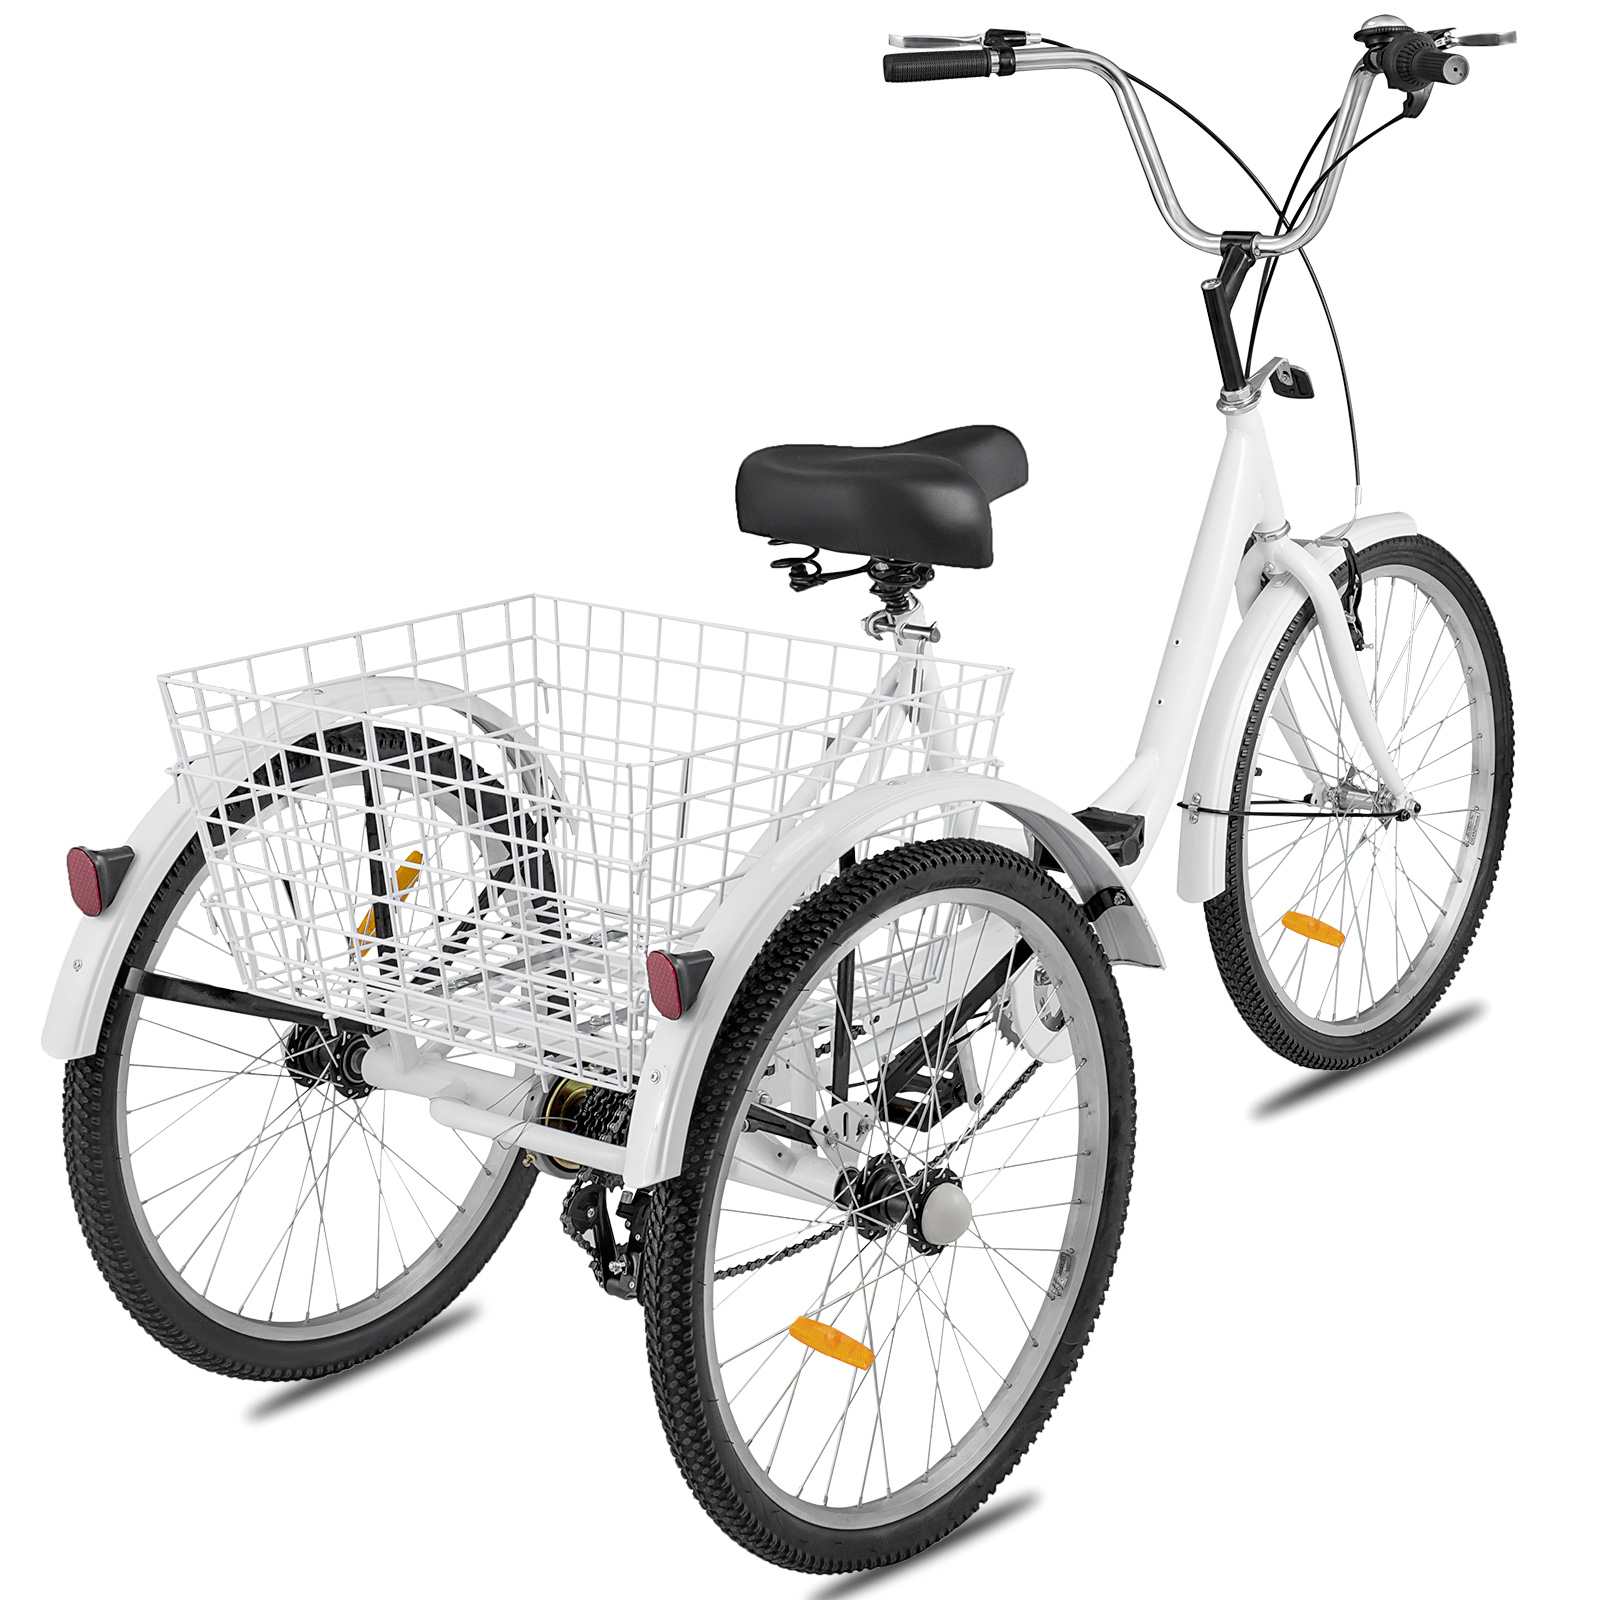 20-24-26-034-Adult-Tricycle-1-7-Speed-3-Wheel-Large-Basket-For-Shopping-Optional thumbnail 95